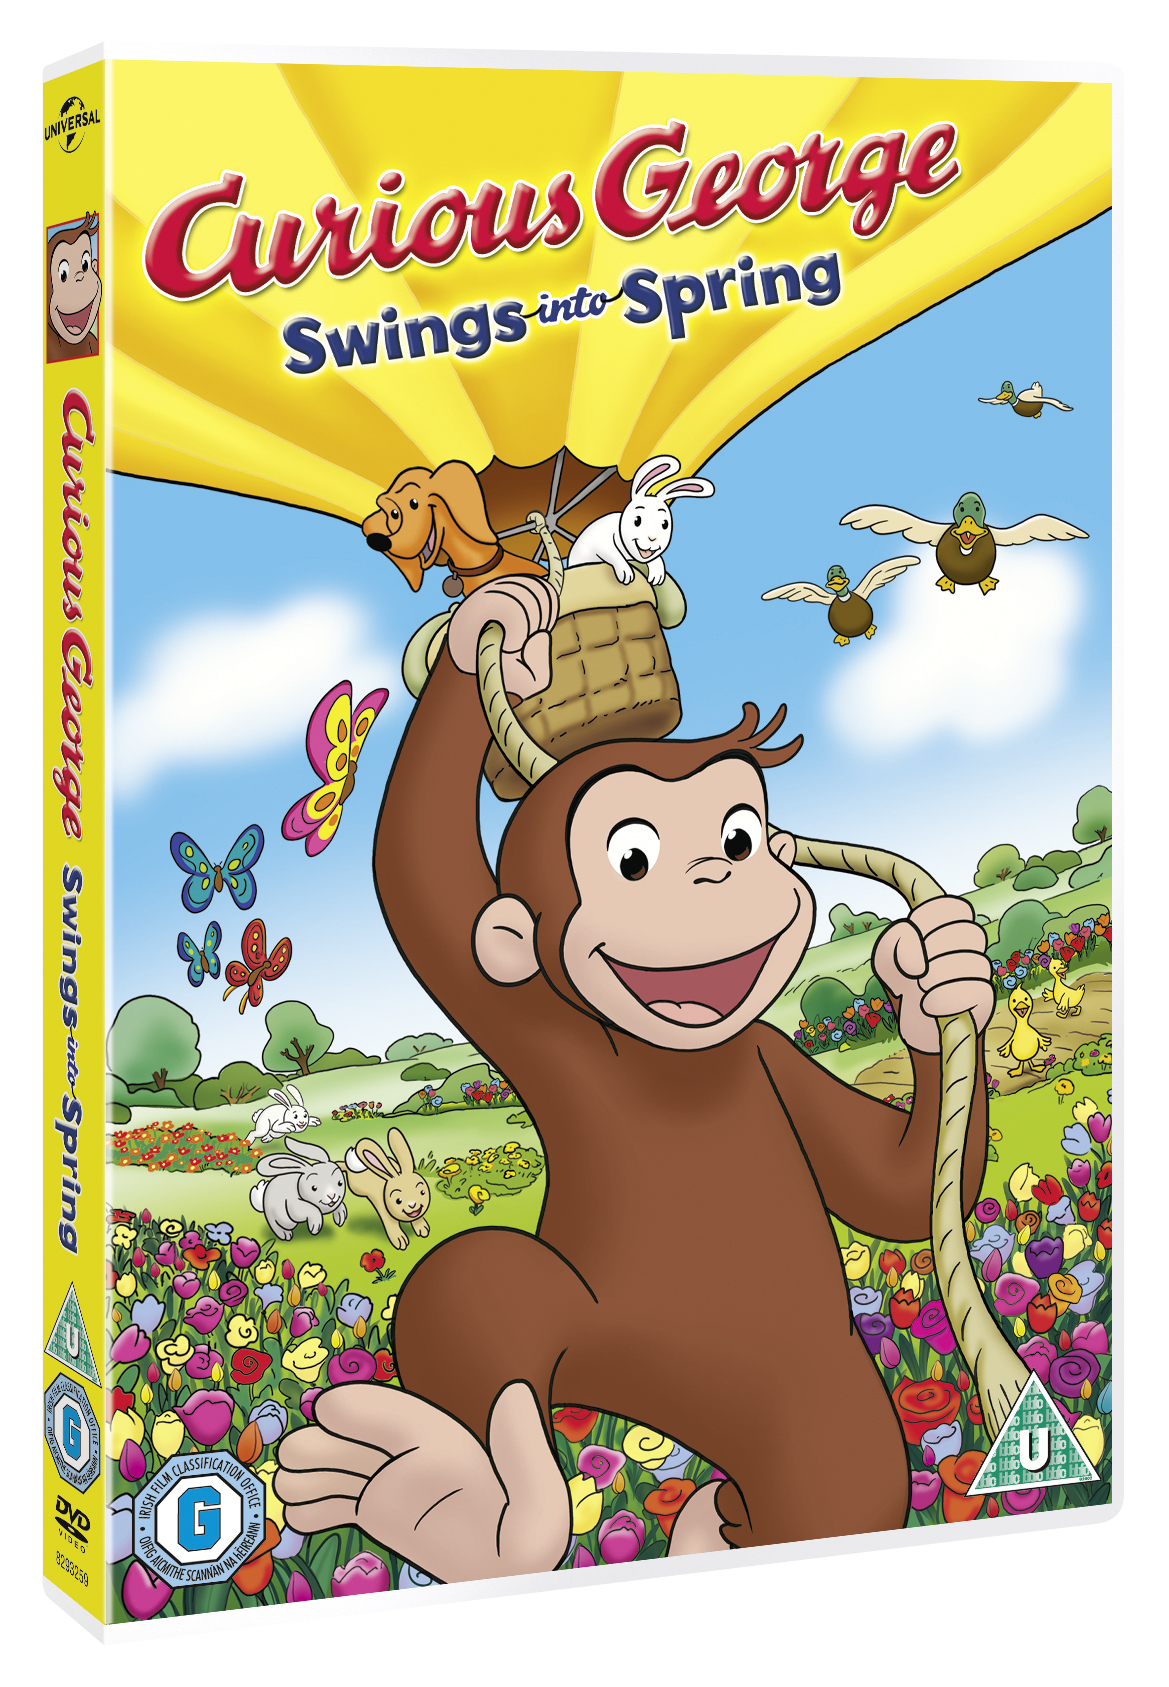 Win 1 of 3 copies of new DVD &#8216;Curious George Swings into Spring&#8217;